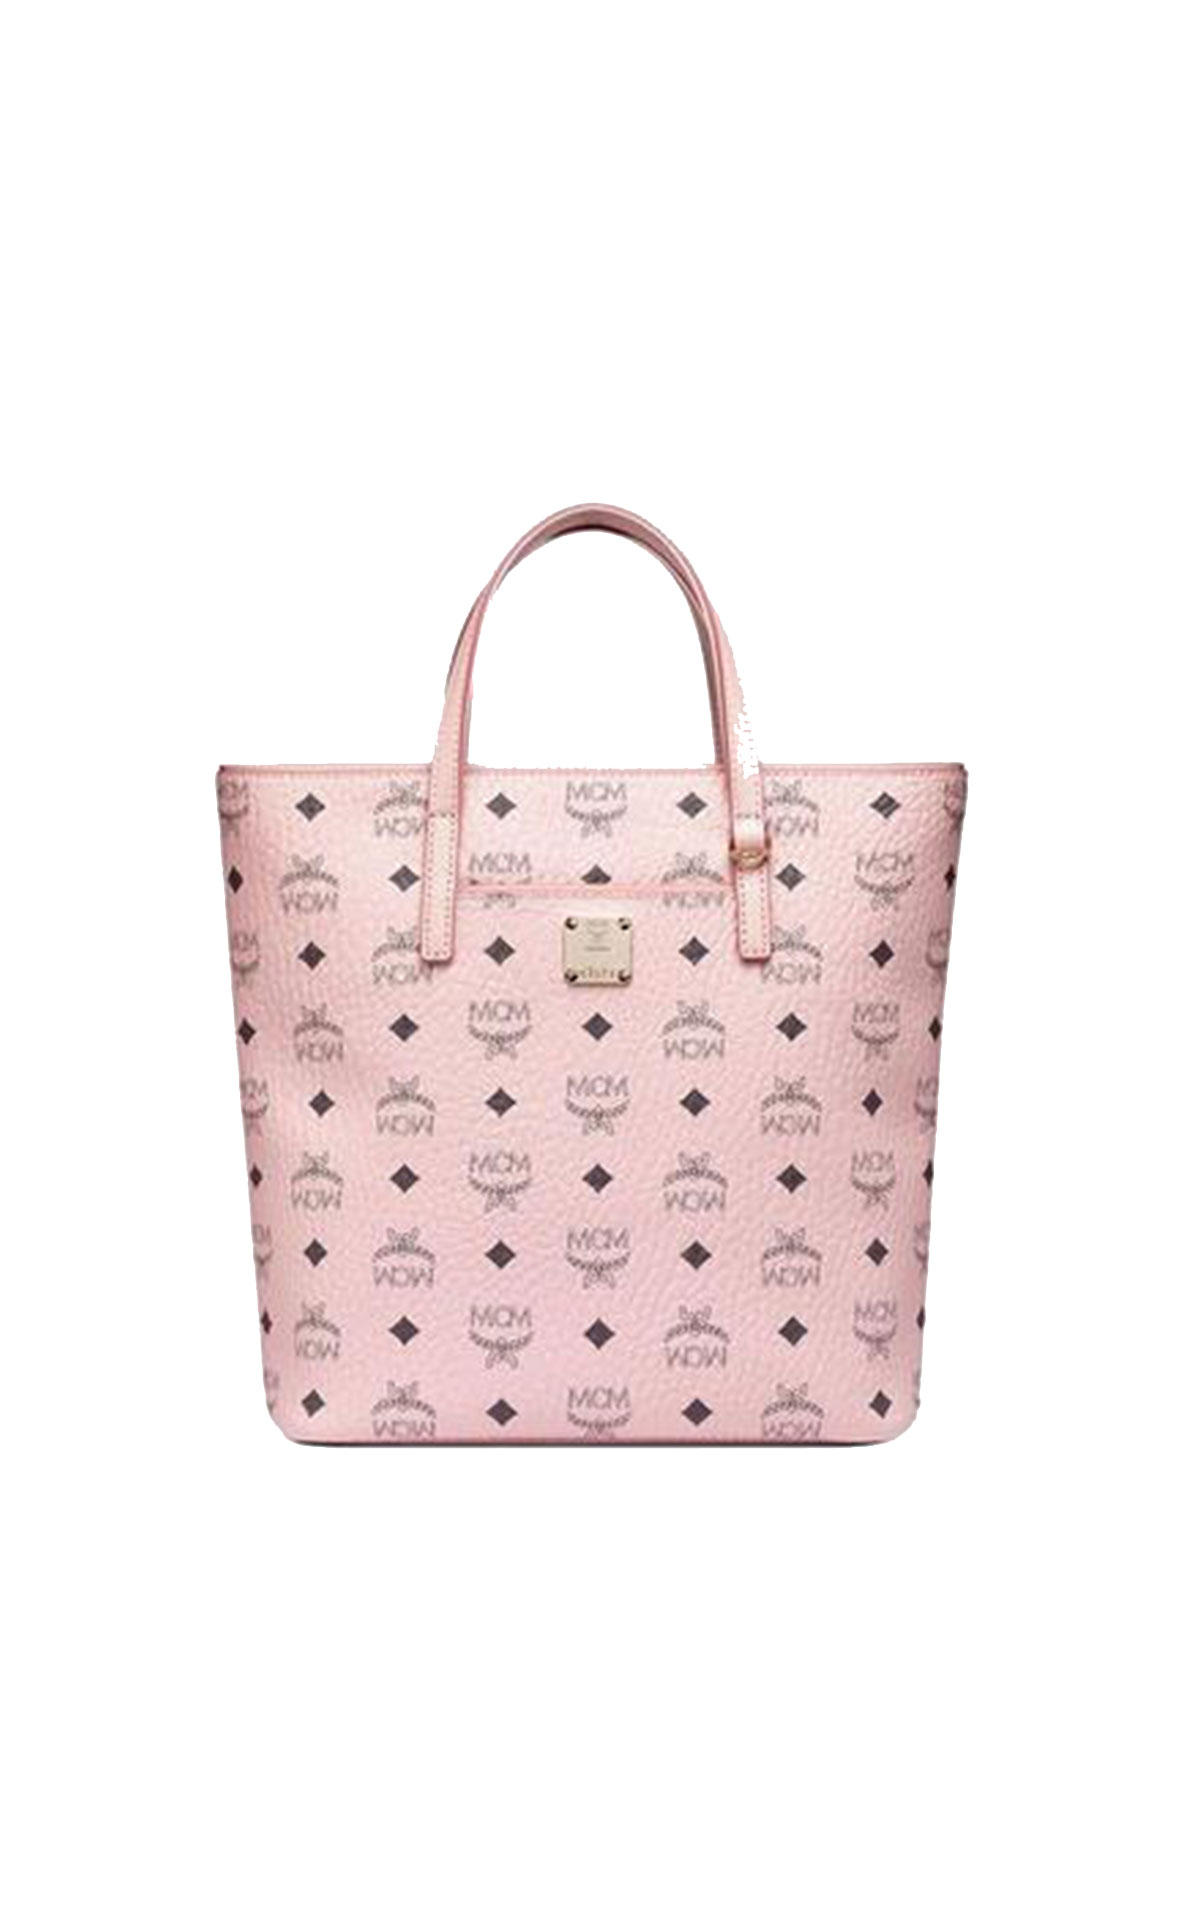 MCM Anya shopper from Bicester Village